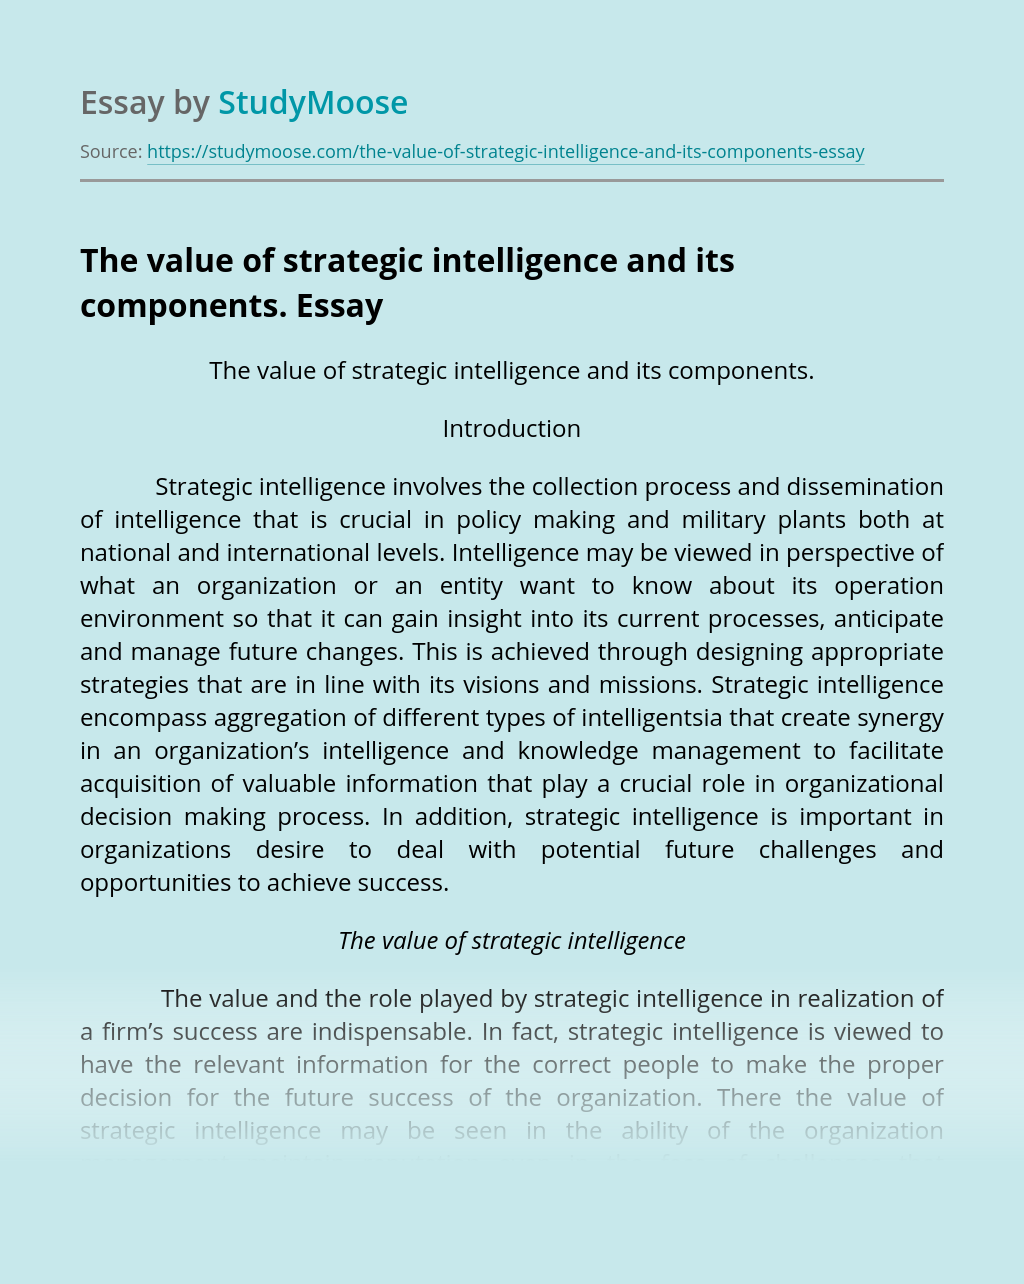 The value of strategic intelligence and its components.